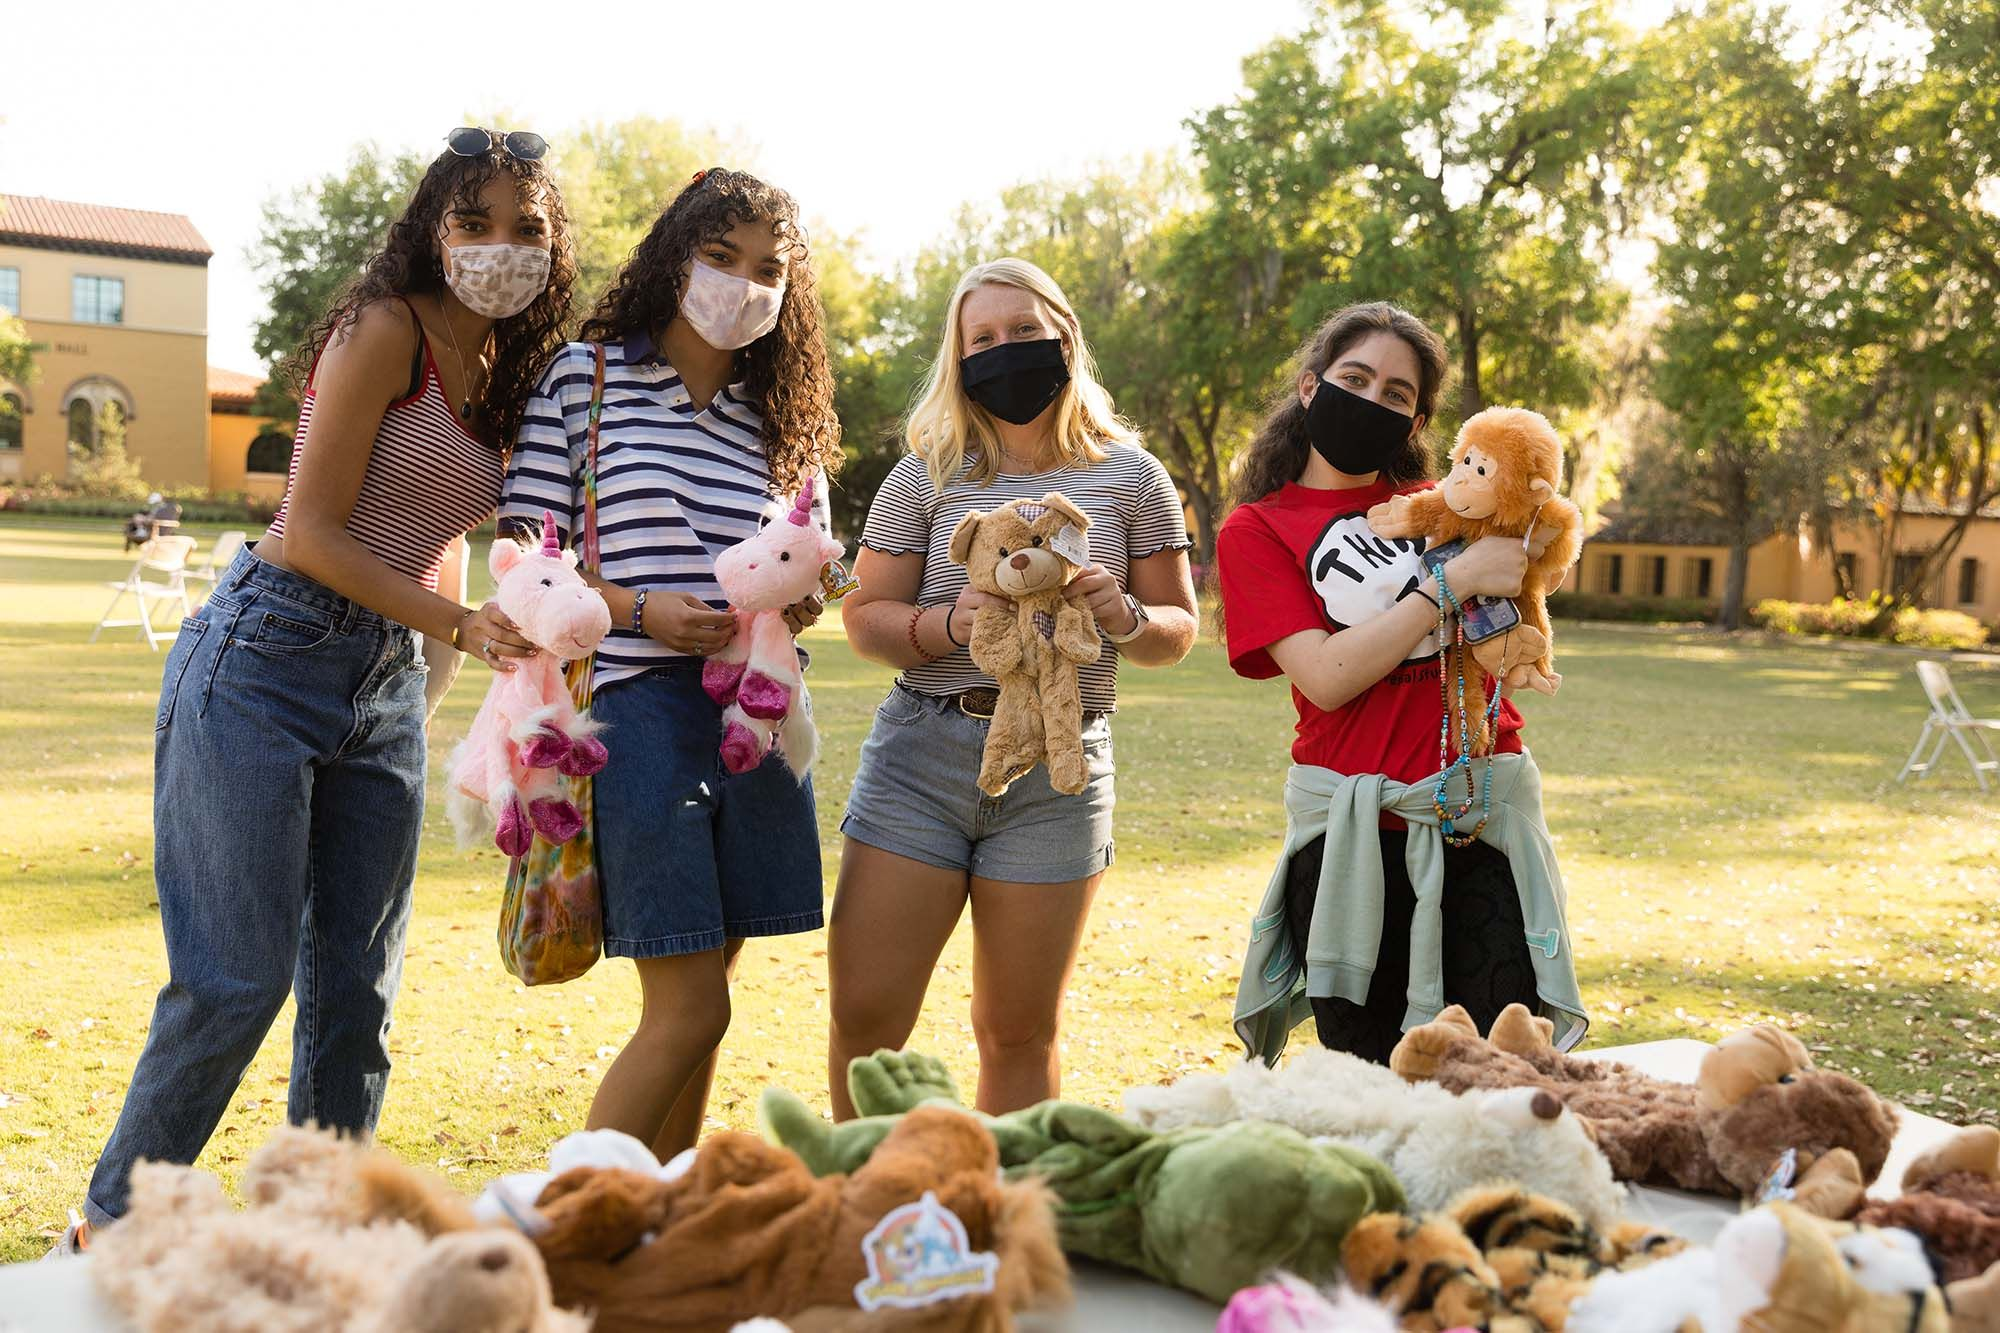 Students pose with stuffed animals